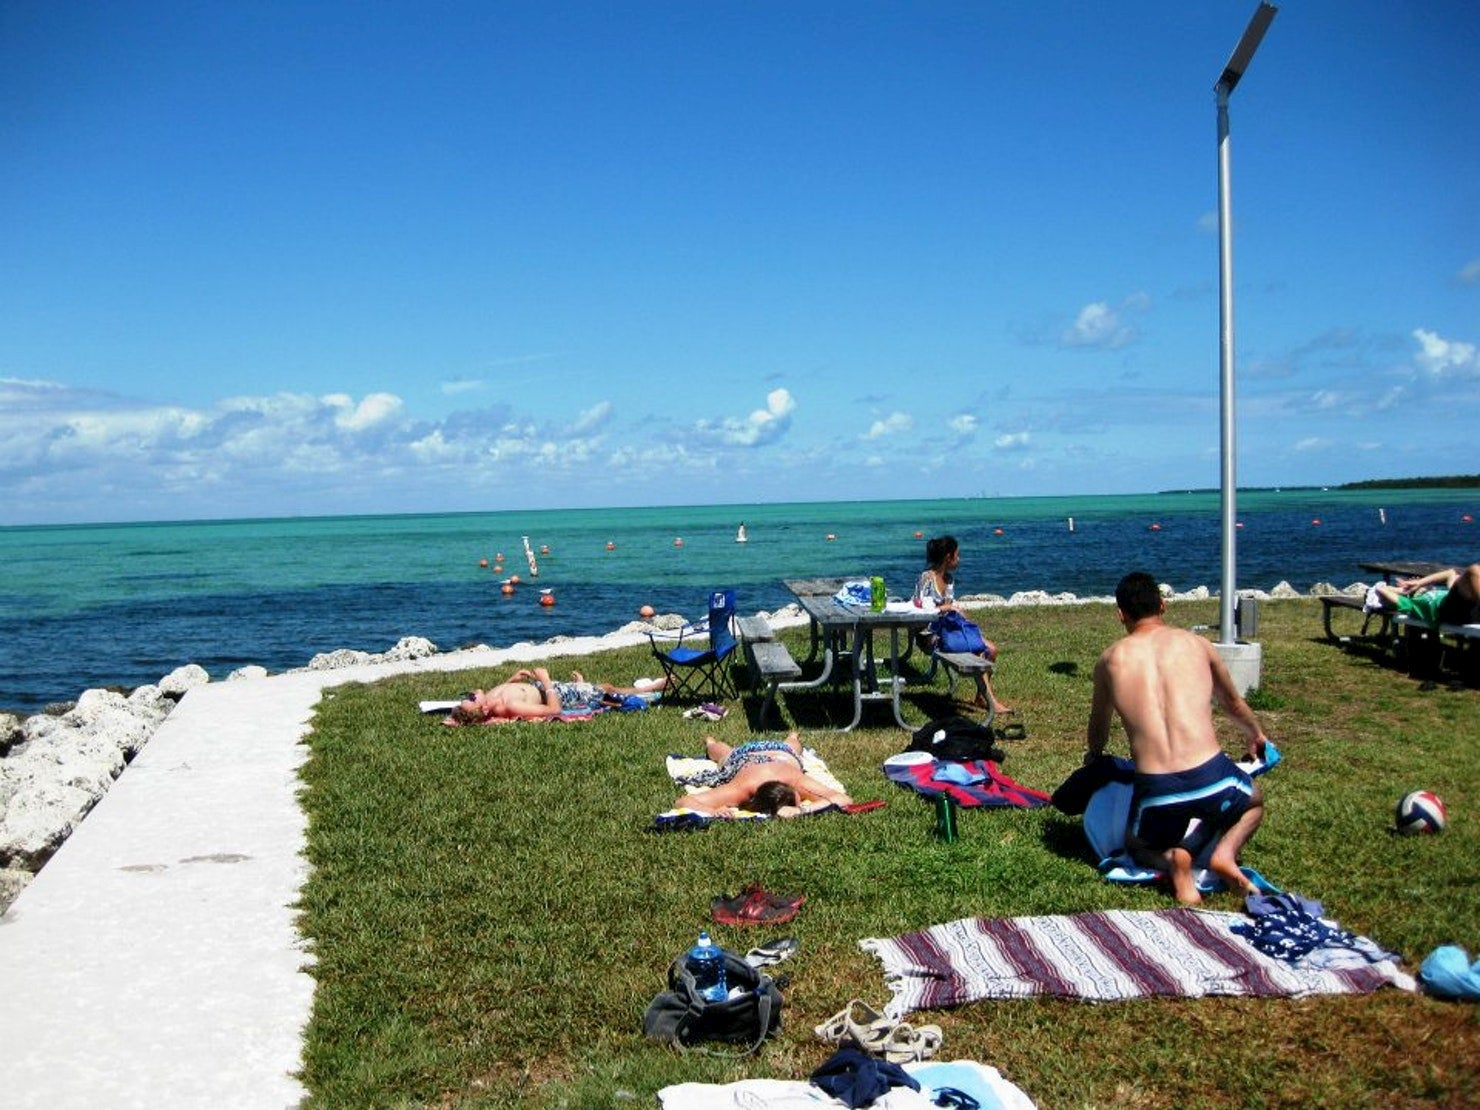 Campers soaking in the sun on the Keys coast.